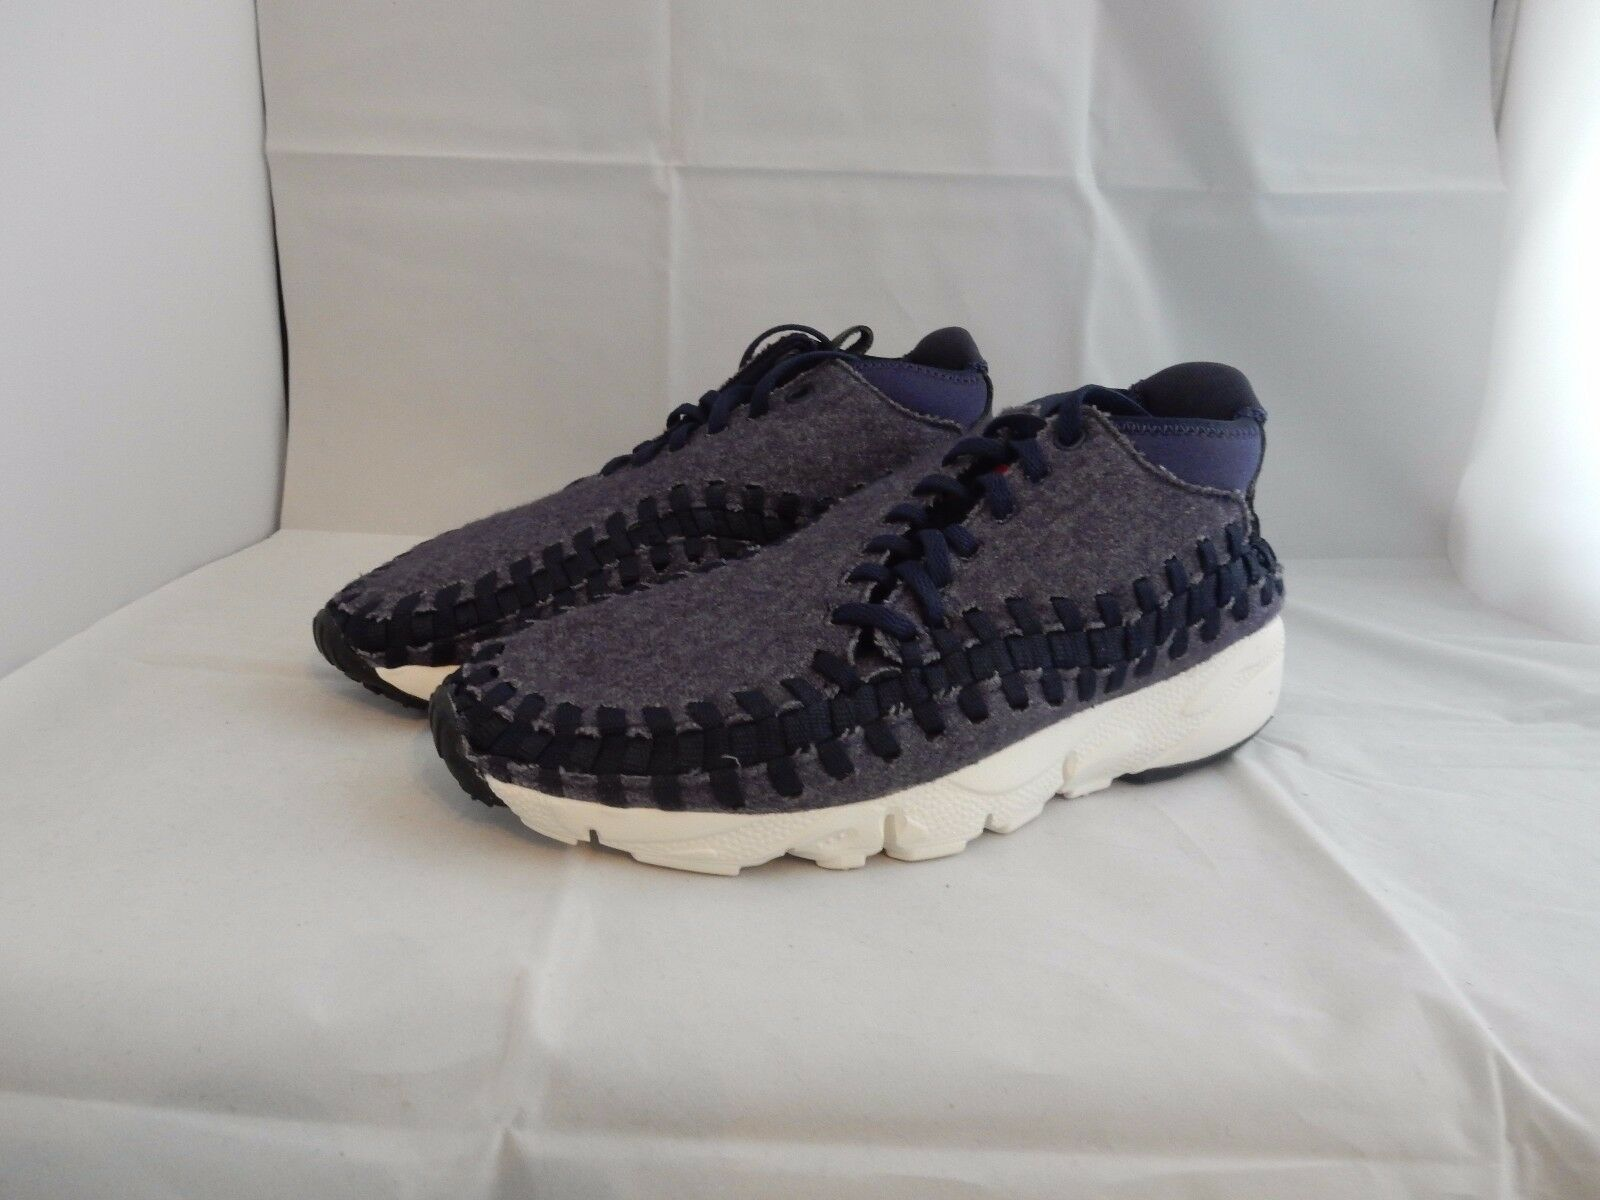 Nike air footscape blau aus der männer - usa 8,5 nm.